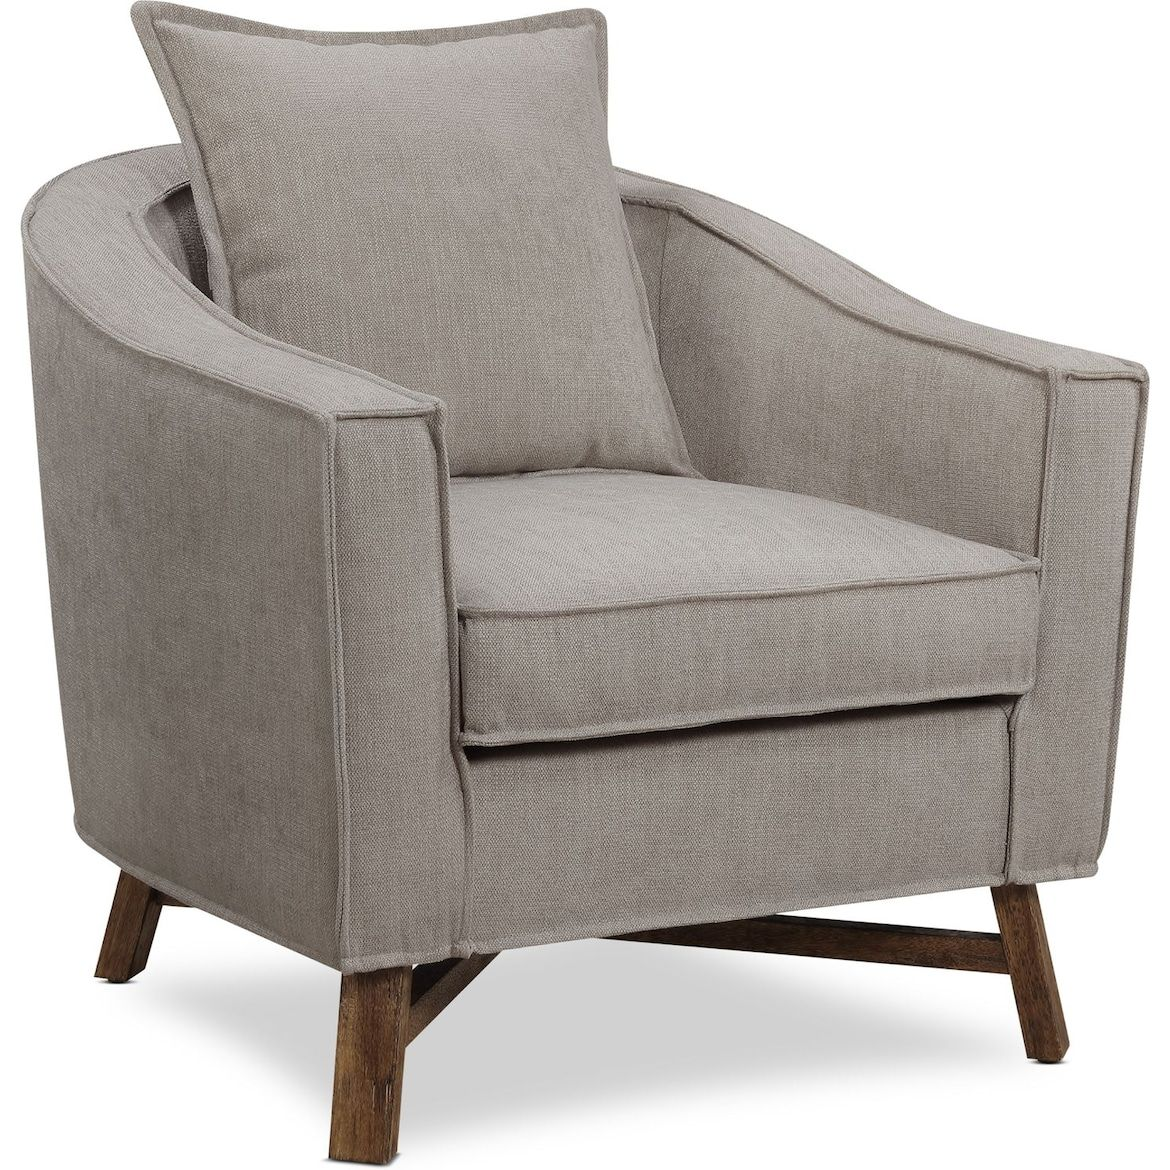 Cohen Accent Chair Value City Furniture And Mattresses Furniture Value City Furniture Reclining Furniture